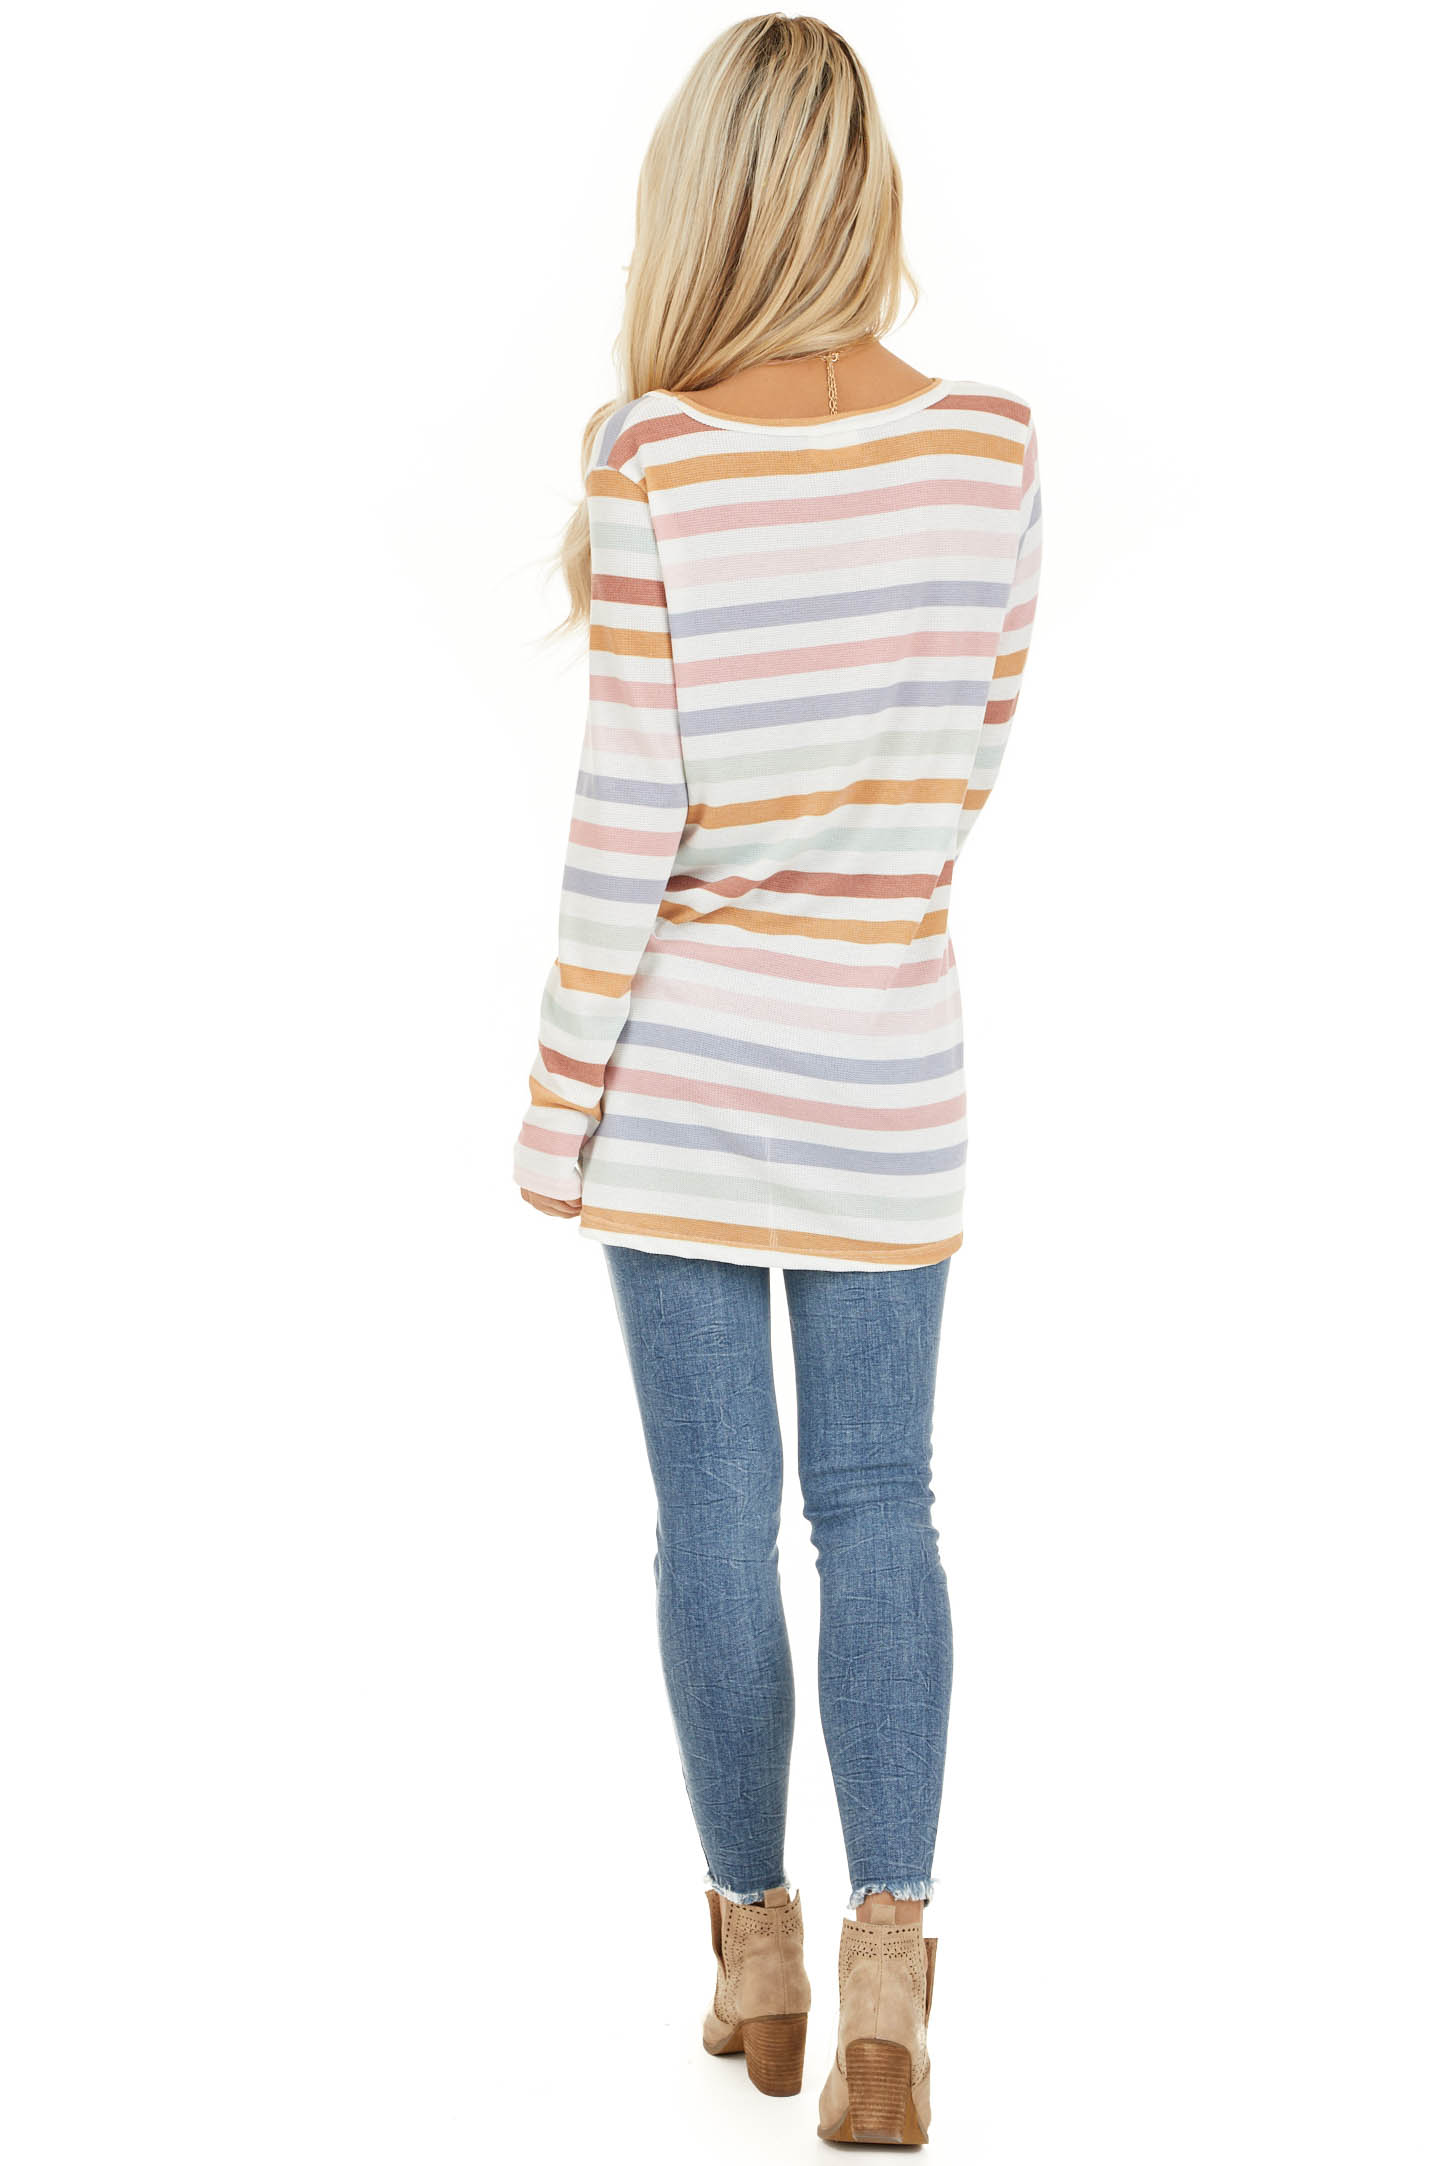 Ivory Multicolor Striped Knit Top with Long Sleeves back full body